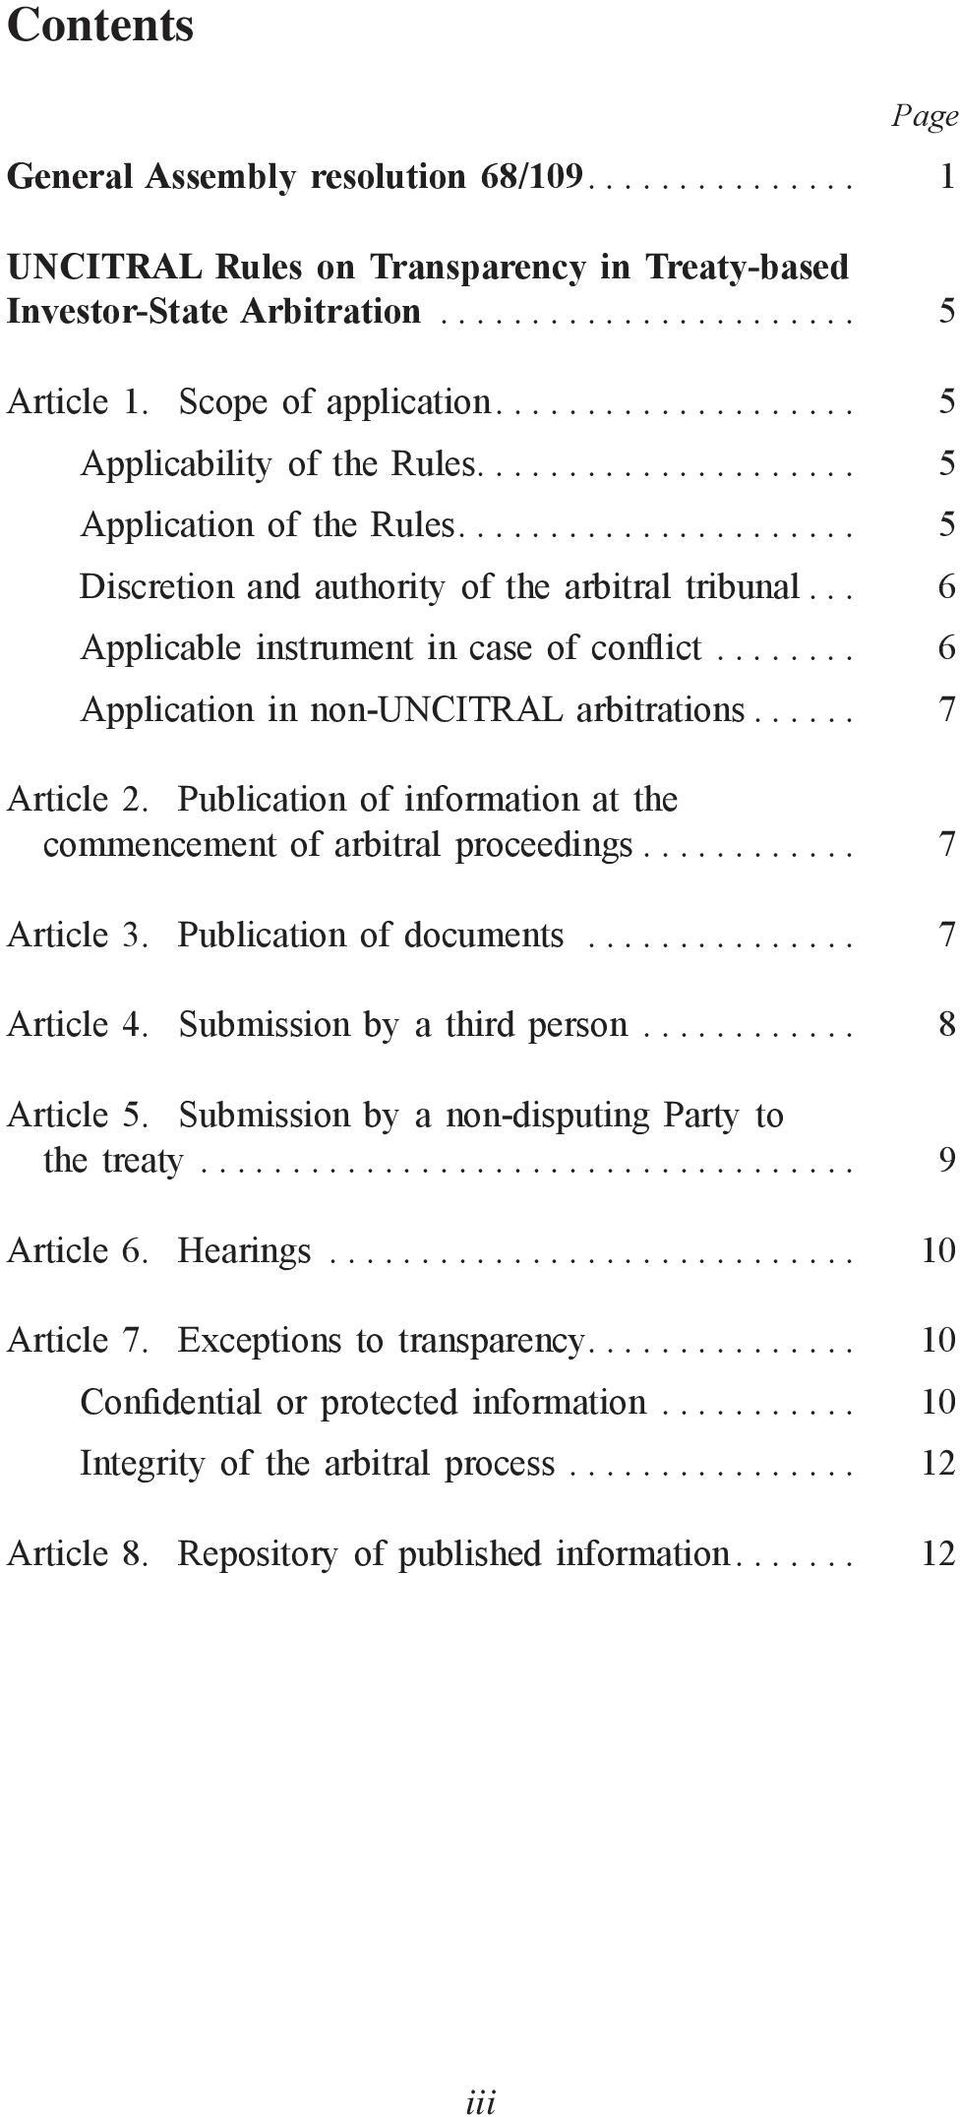 Publication of information at the commencement of arbitral proceedings............ 7 Article 3. Publication of documents... 7 Article 4. Submission by a third person... 8 Article 5.